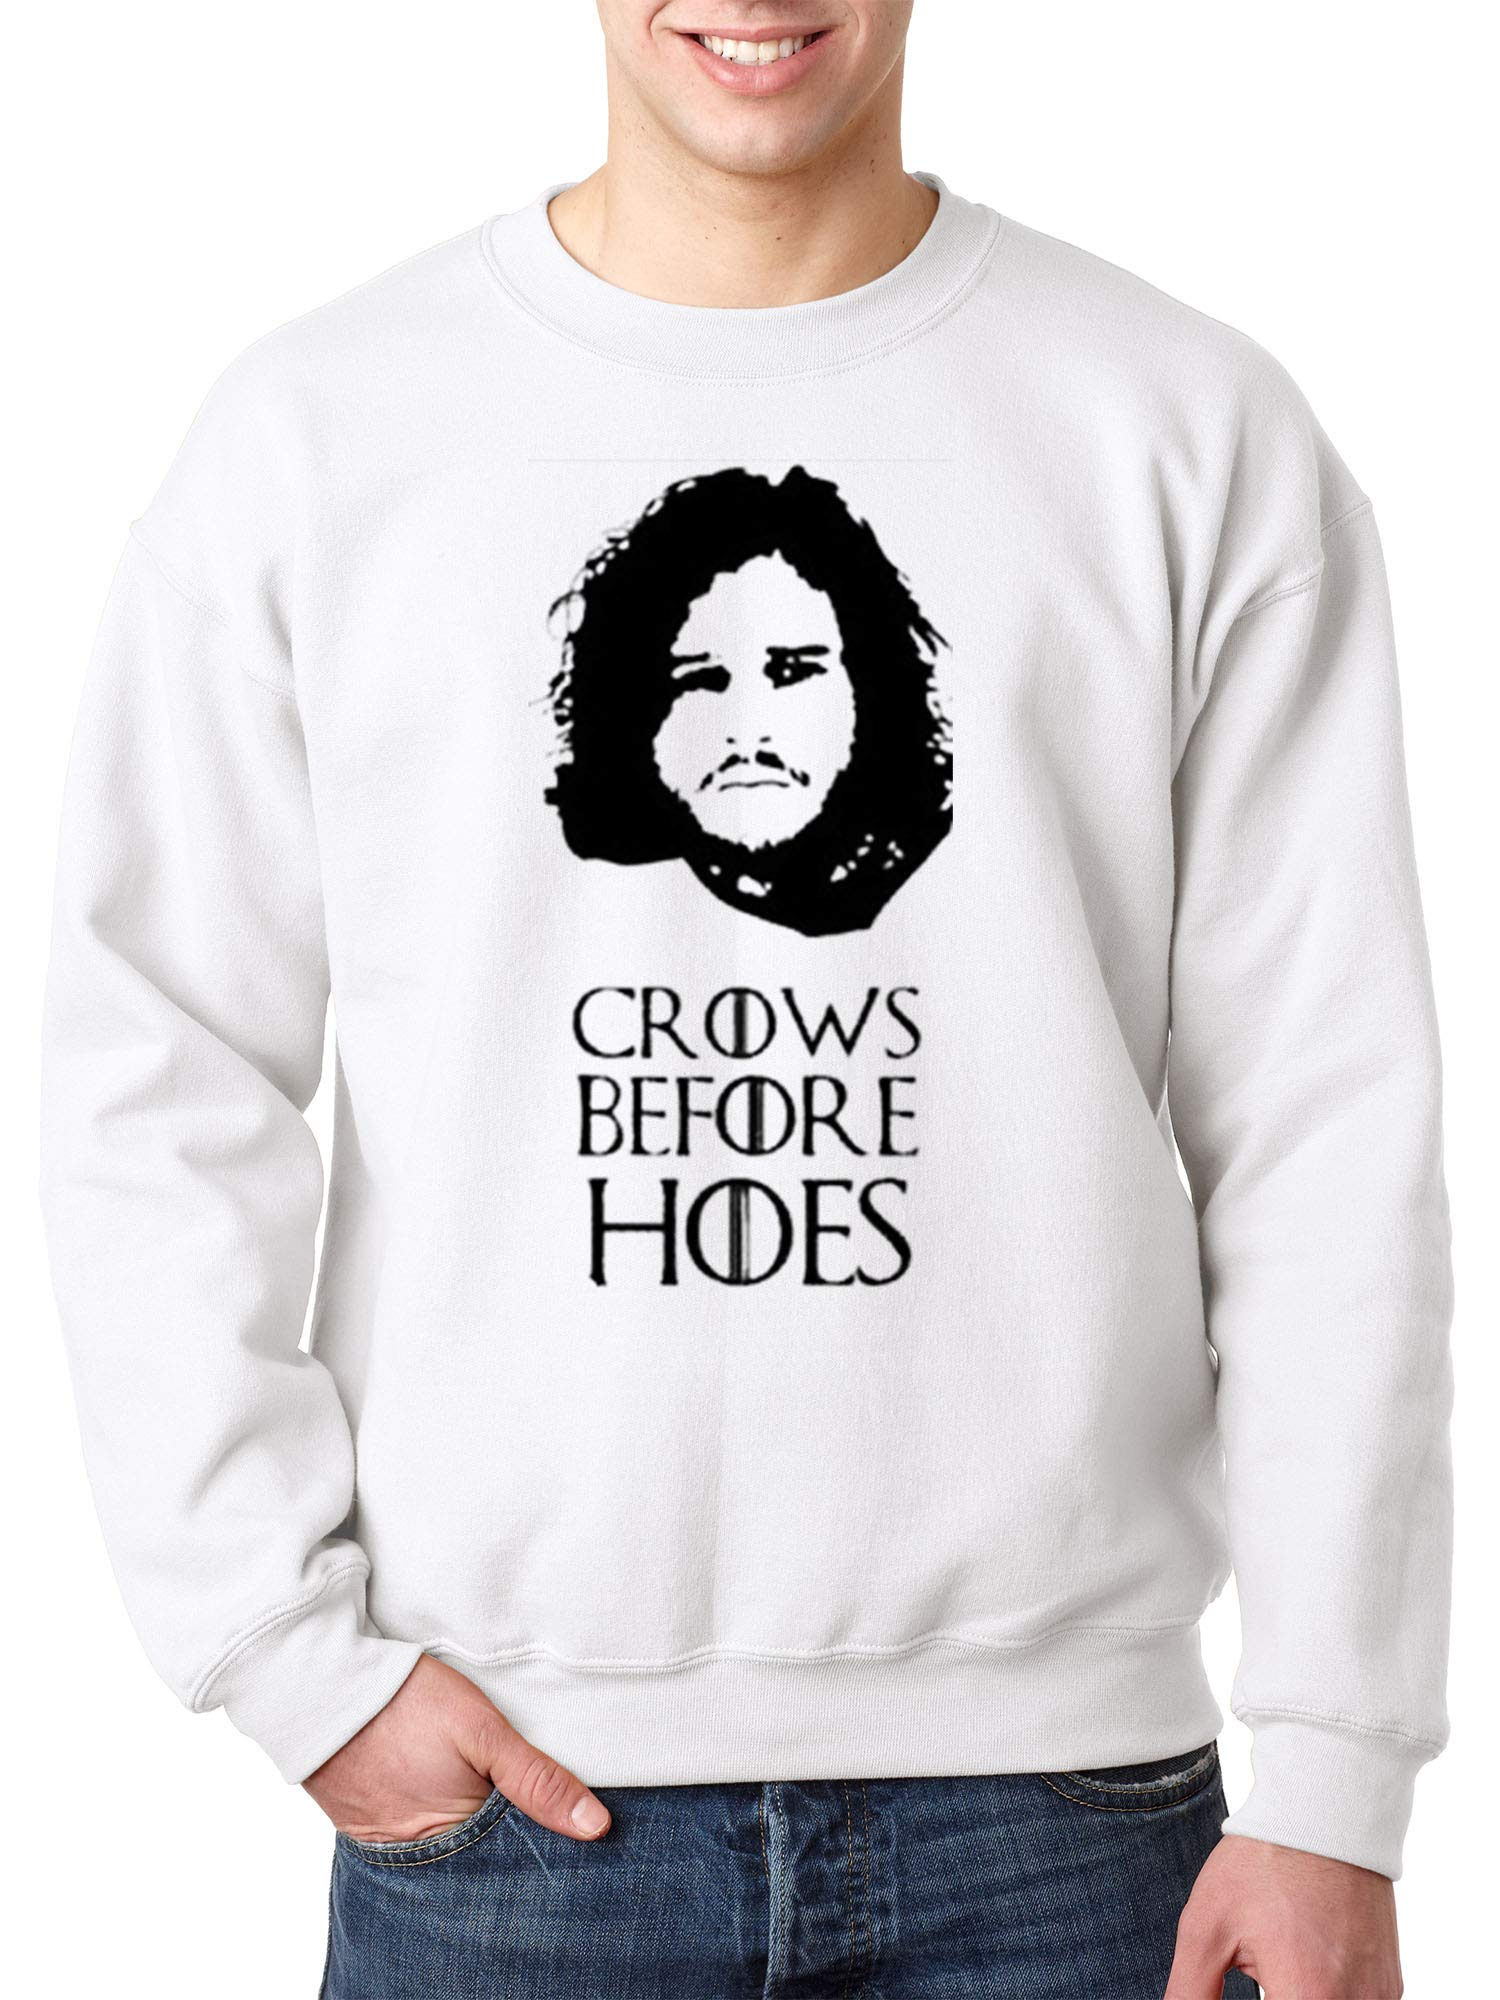 114 Crewneck Crows Before Hoes Jon Snow Unisex Pullover 1683 Shirts